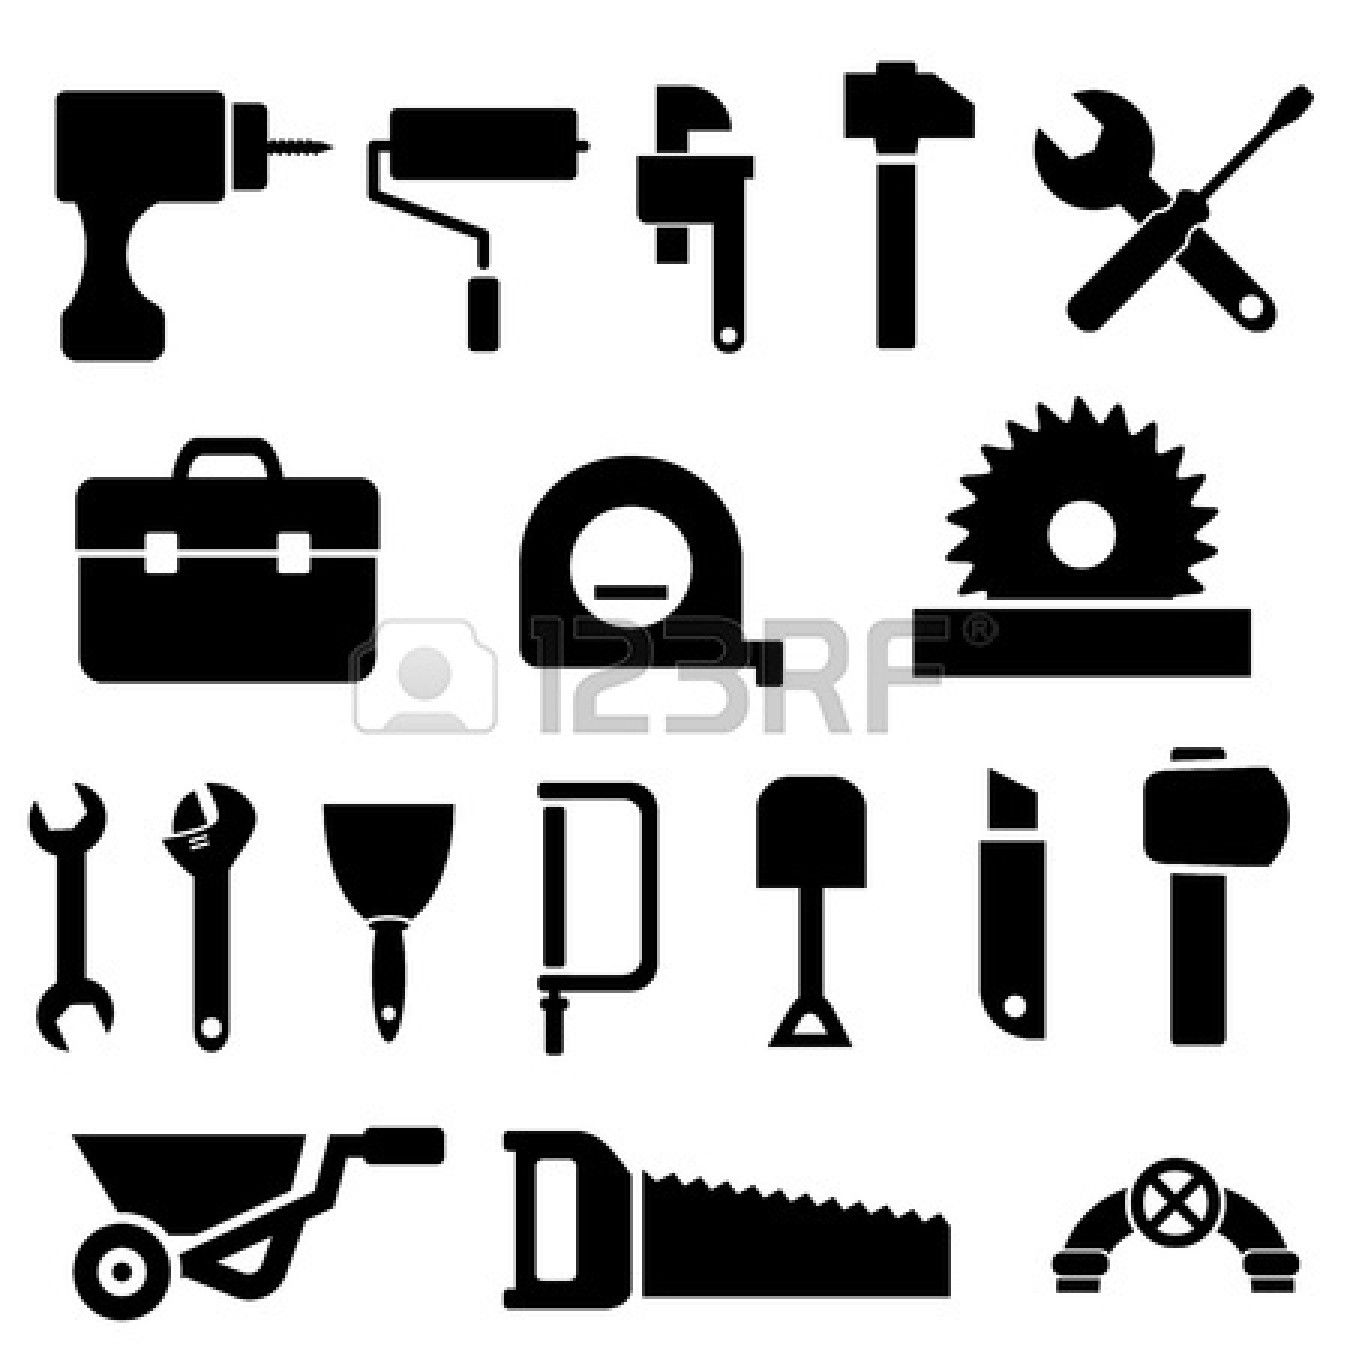 Adjustable Wrench Images, Stock Pictures, Royalty Free